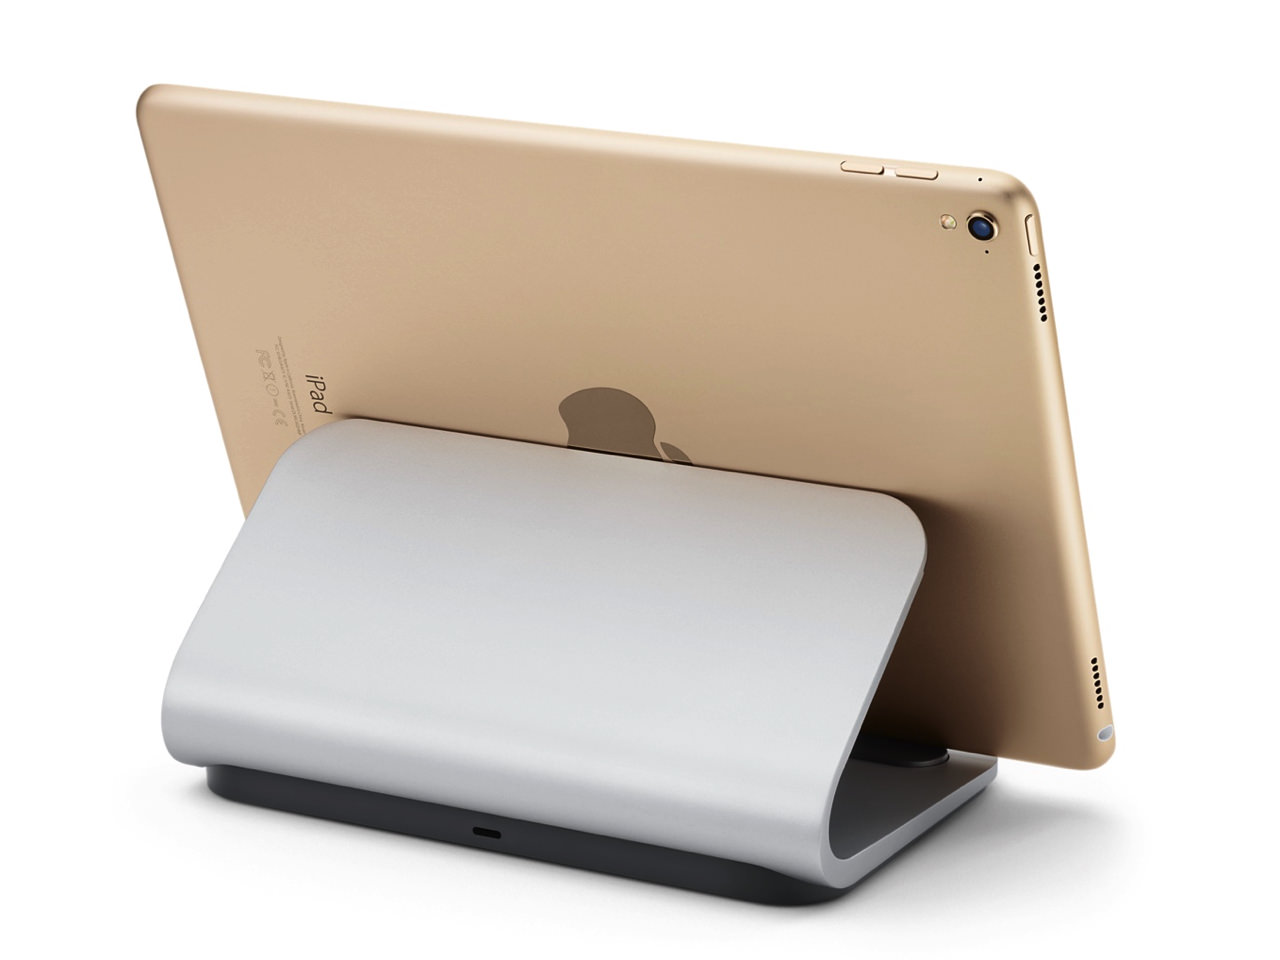 Logi base smart connector with charging stand for ipad pro1